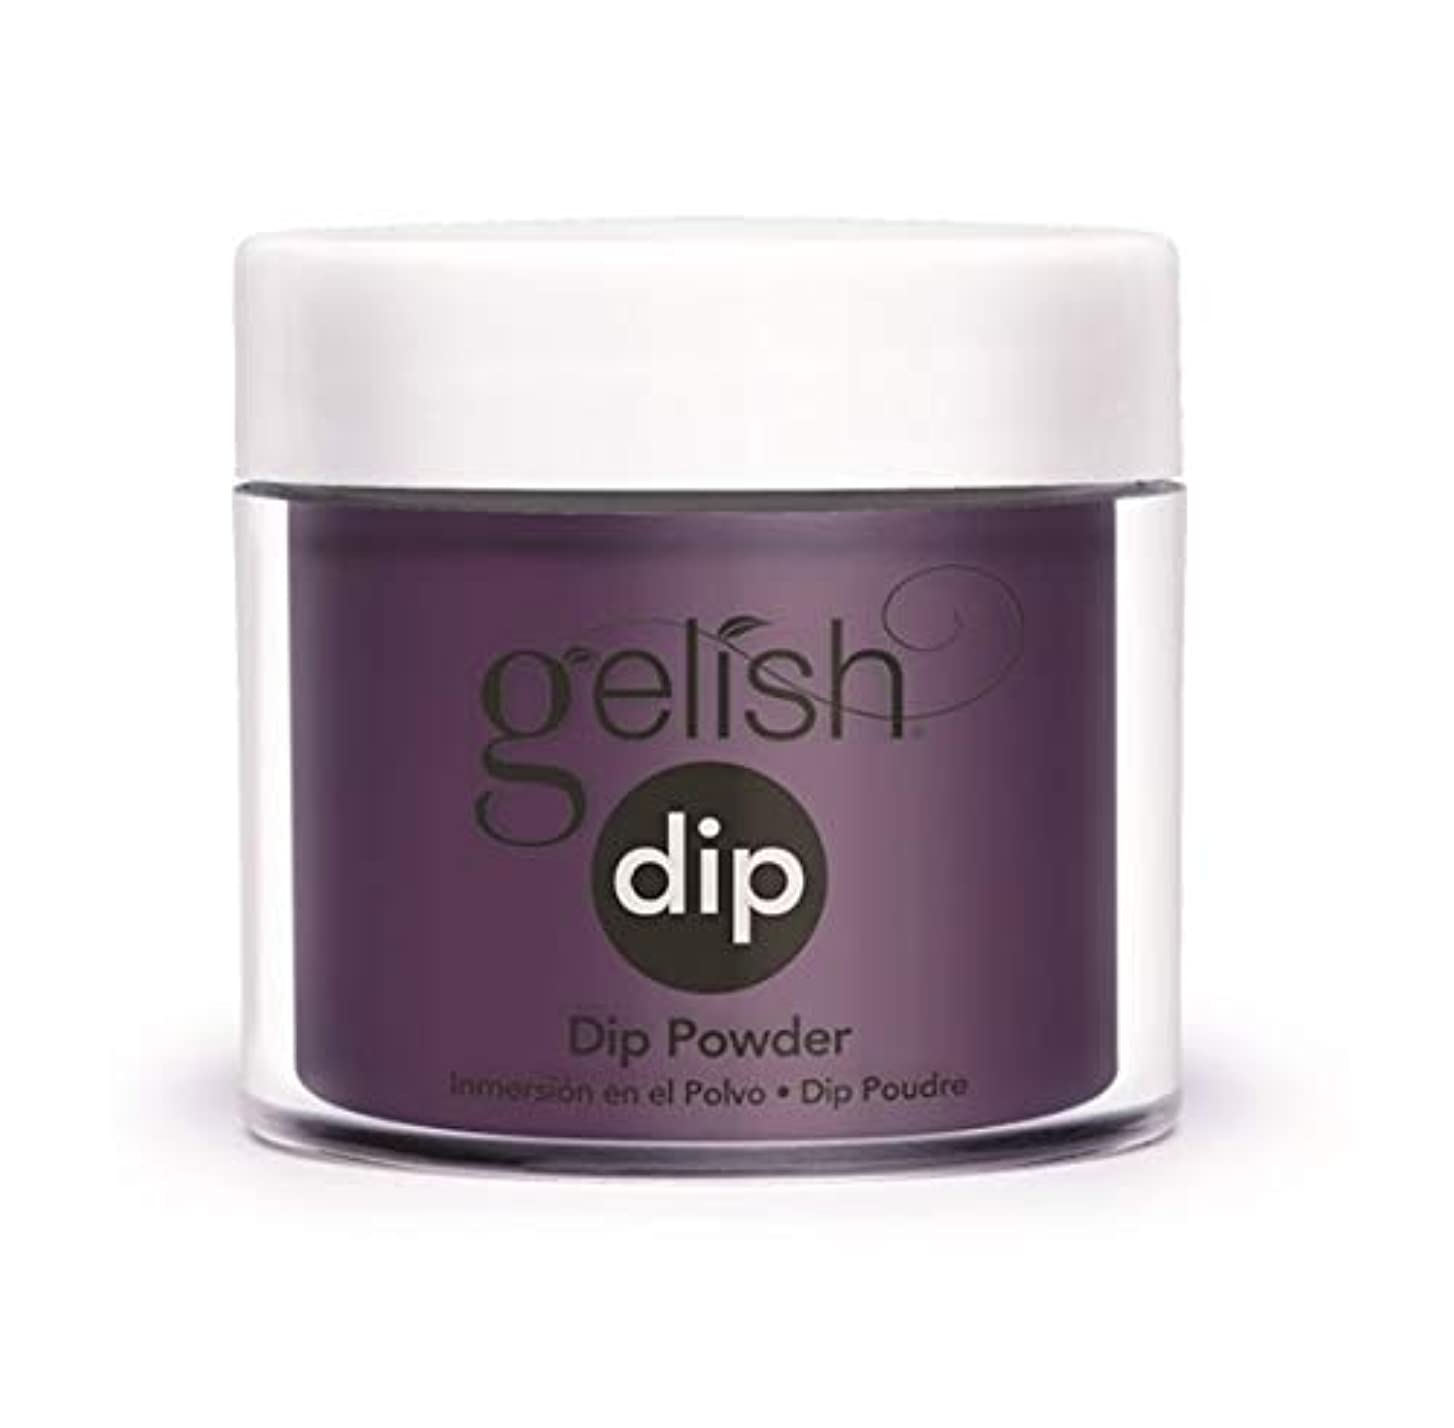 Harmony Gelish - Dip Powder - Forever Marilyn Fall 2019 Collection - A Girl And Her Curls - 23g / 0.8oz